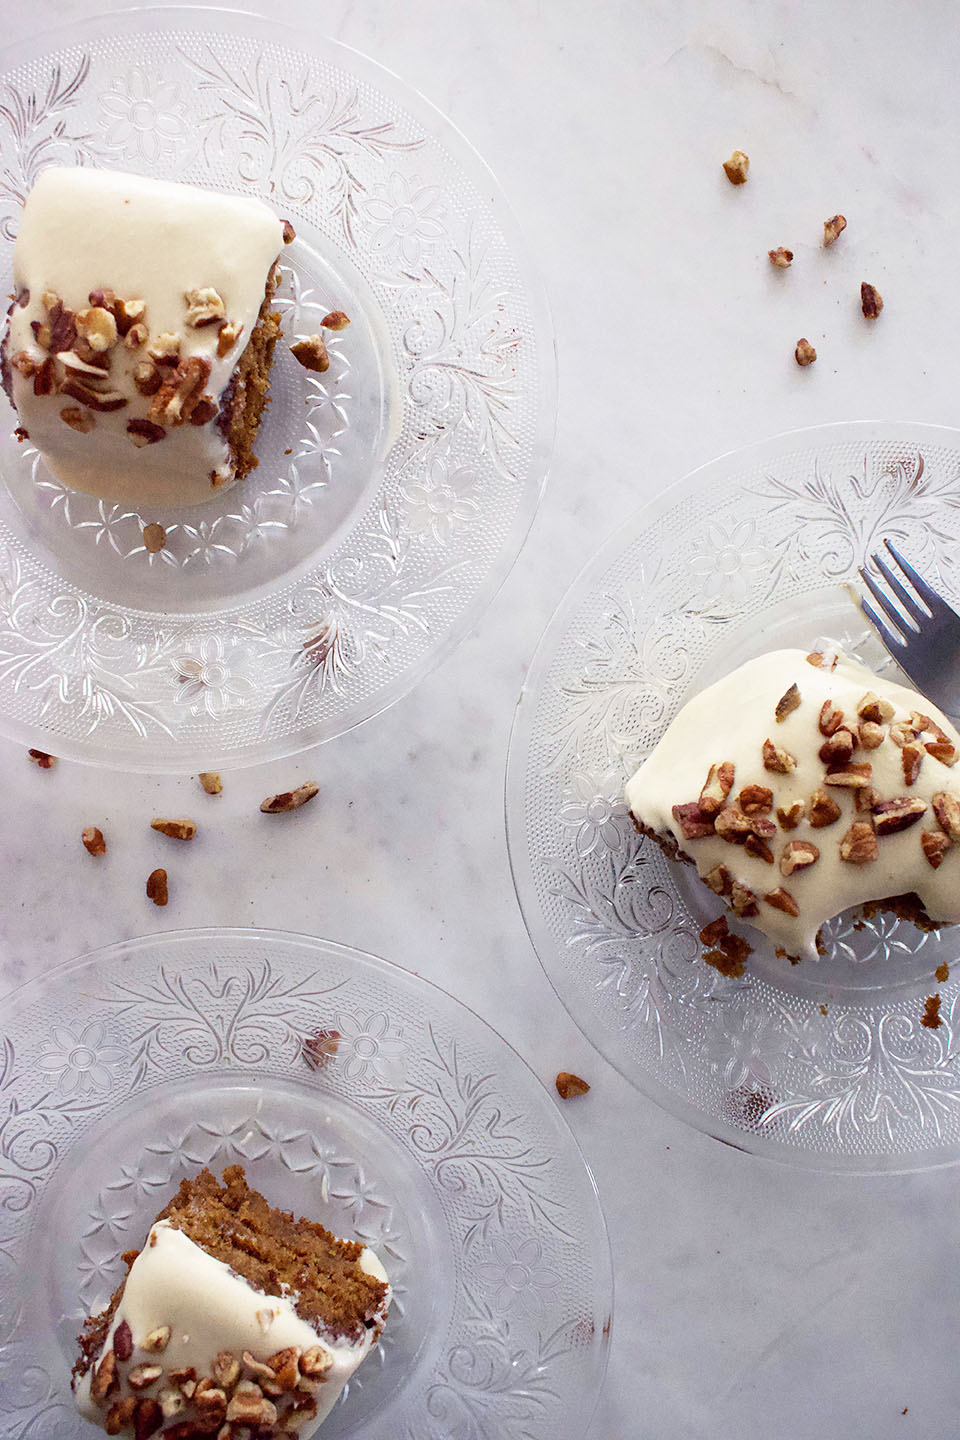 Three crystal plates holding slices of cake with frosting and pecans sit on a marble table.